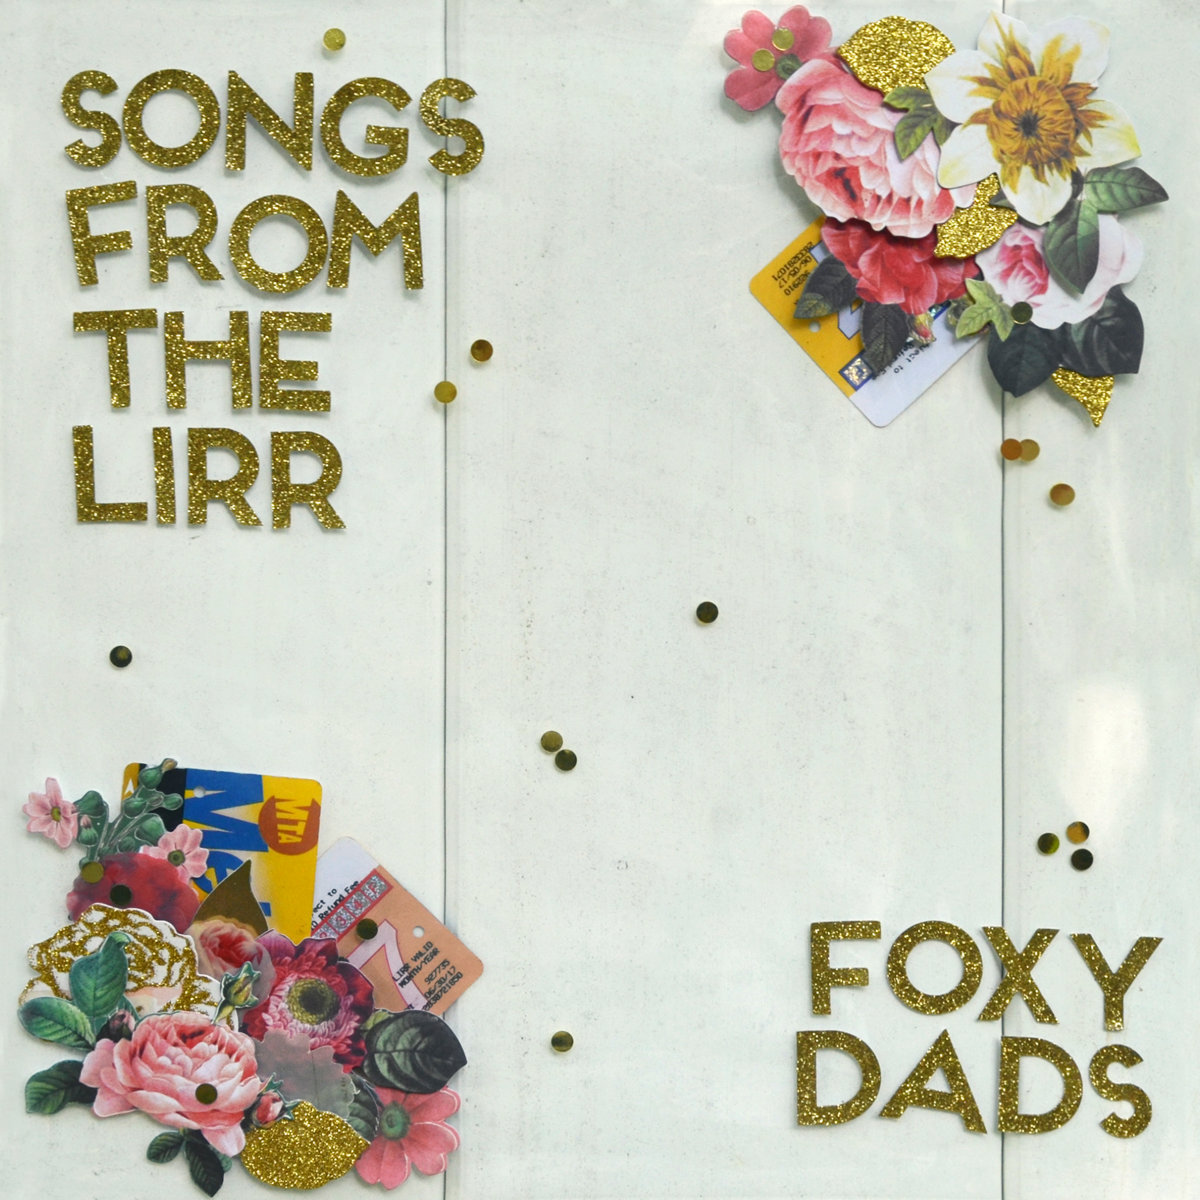 Songs From The Lirr Foxy Dads